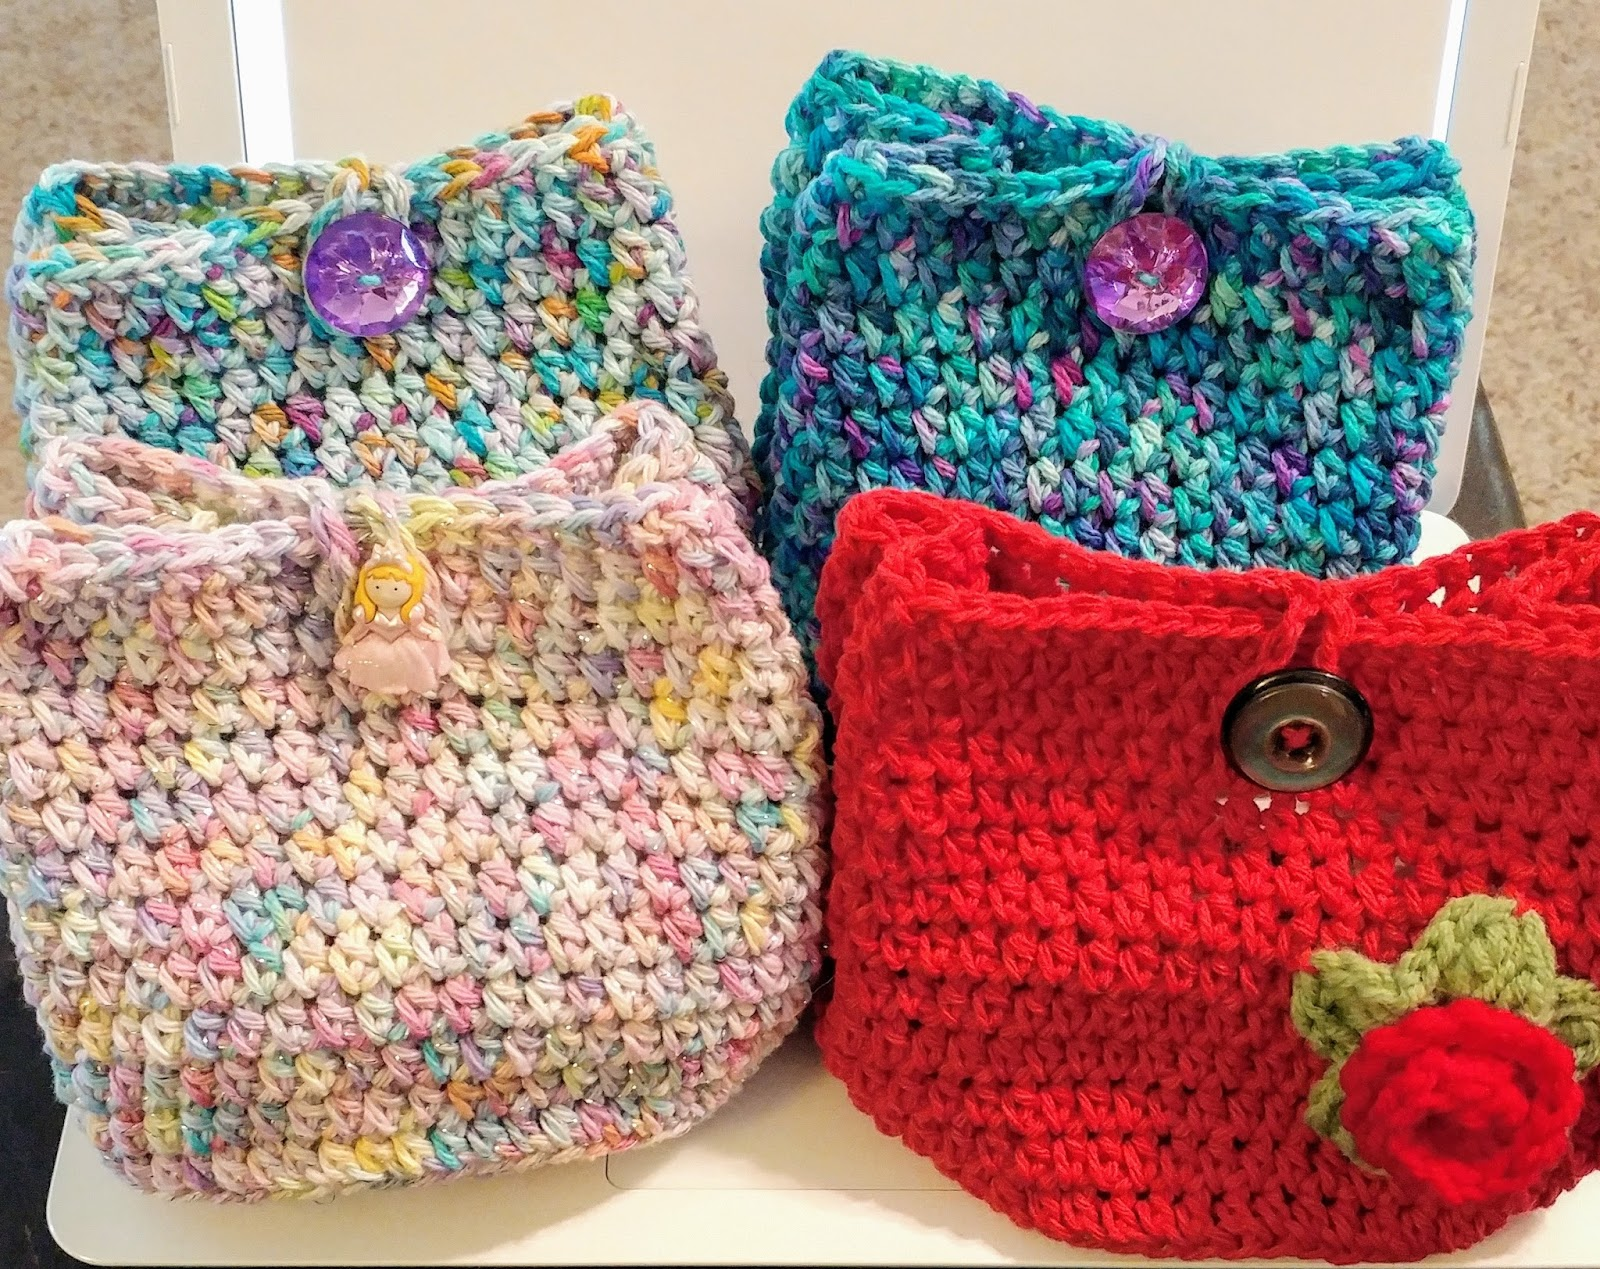 National Crochet Month Cake Cozy Yarn Bag and Free Pattern!